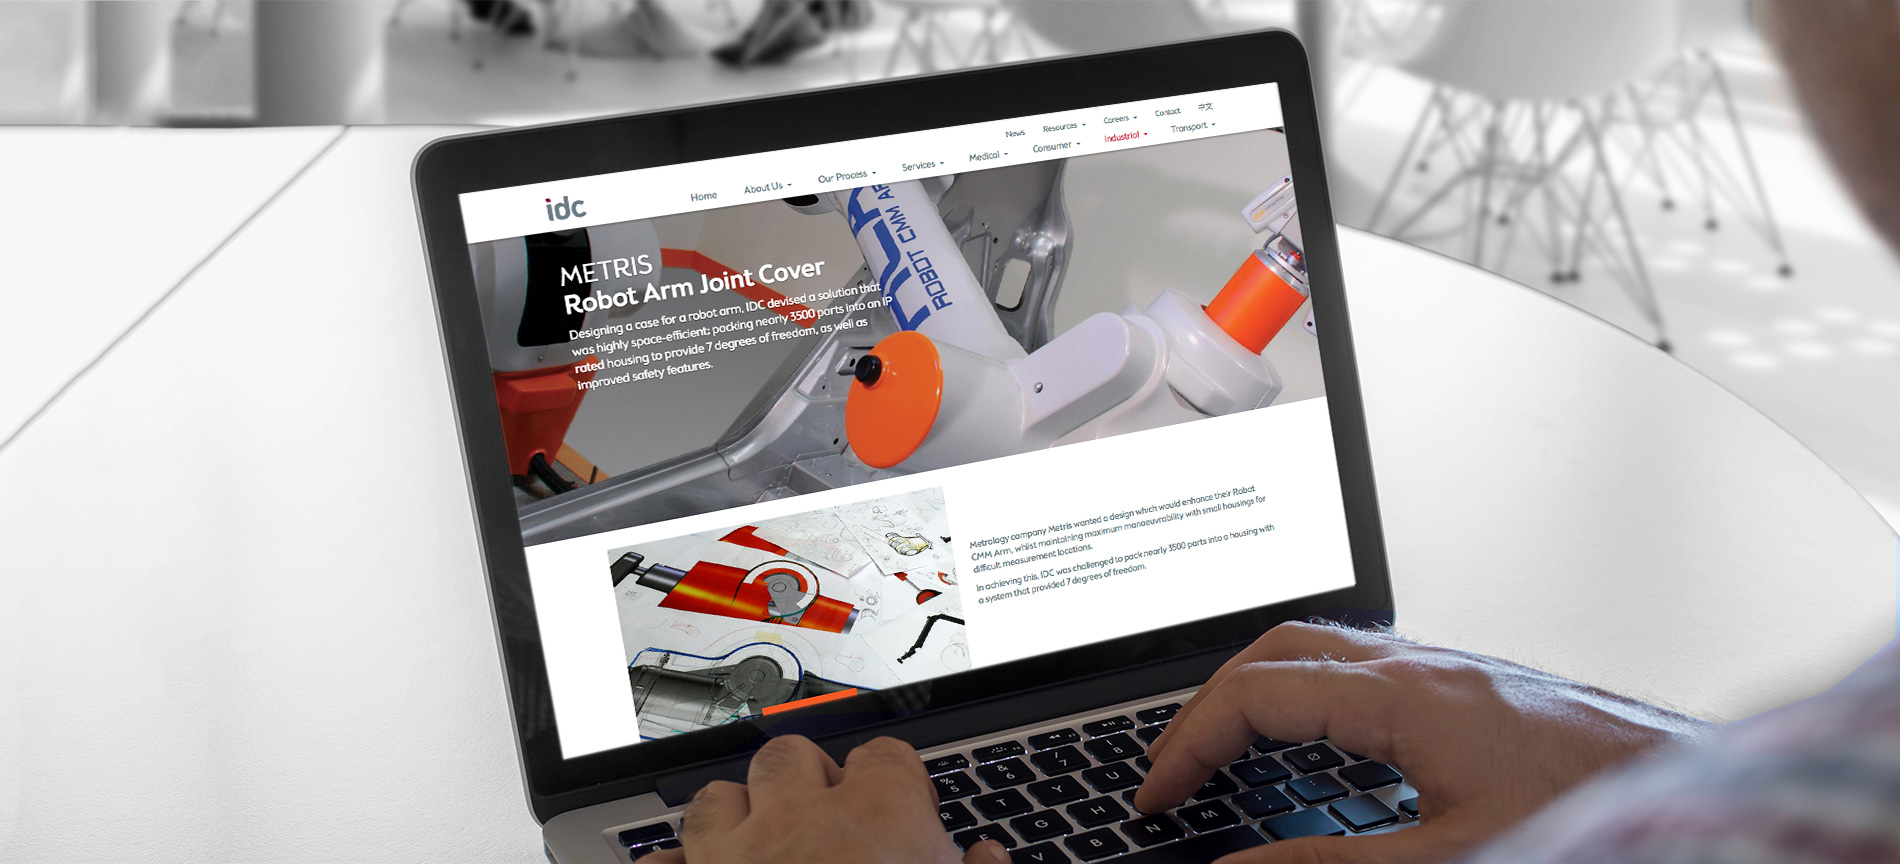 IDC website product page on a laptop - desktop